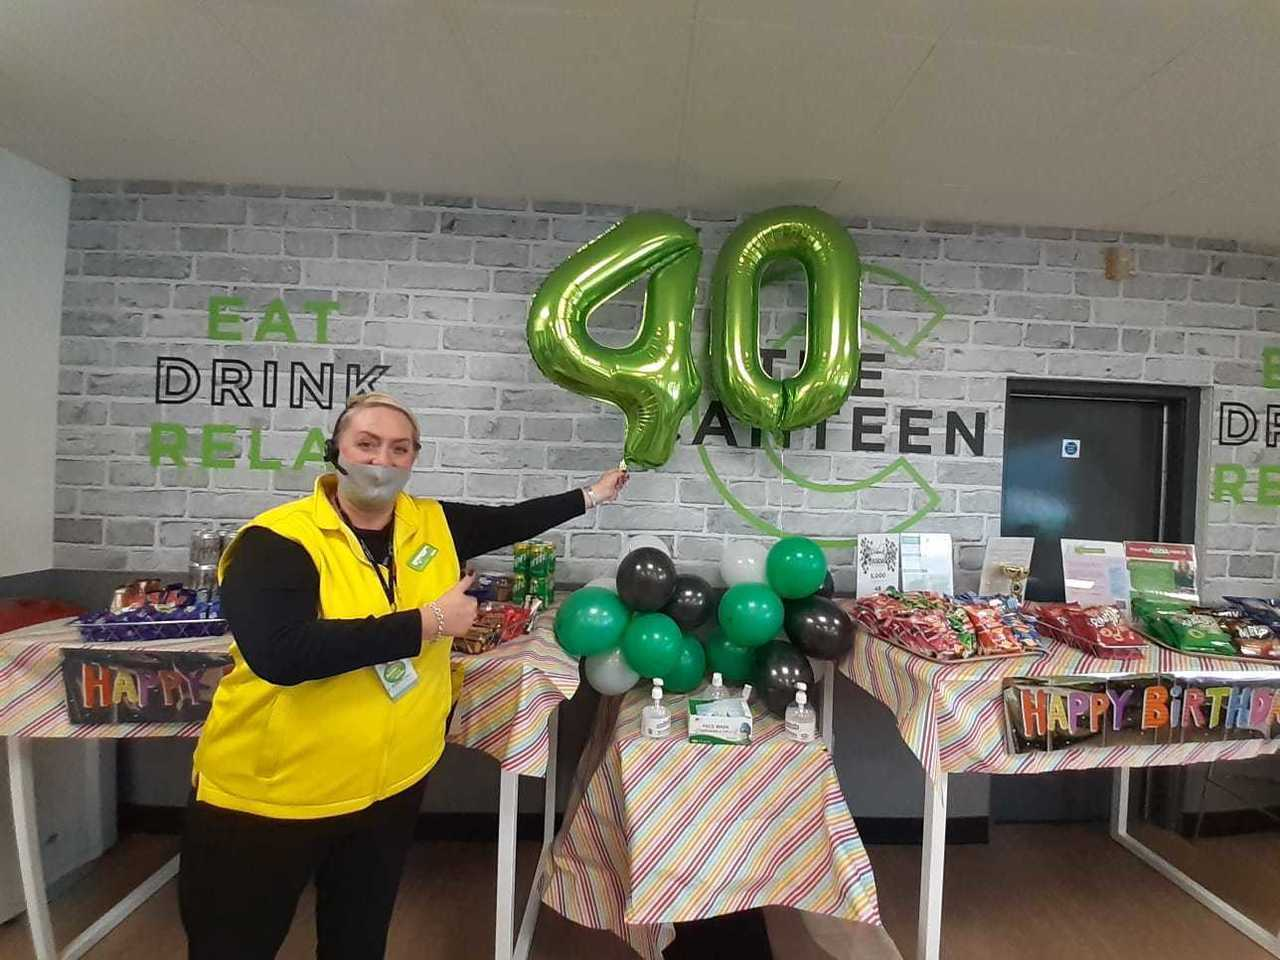 Congratulations to colleagues at Asda Blantyre as the store marks its 40 birthday | Asda Blantyre